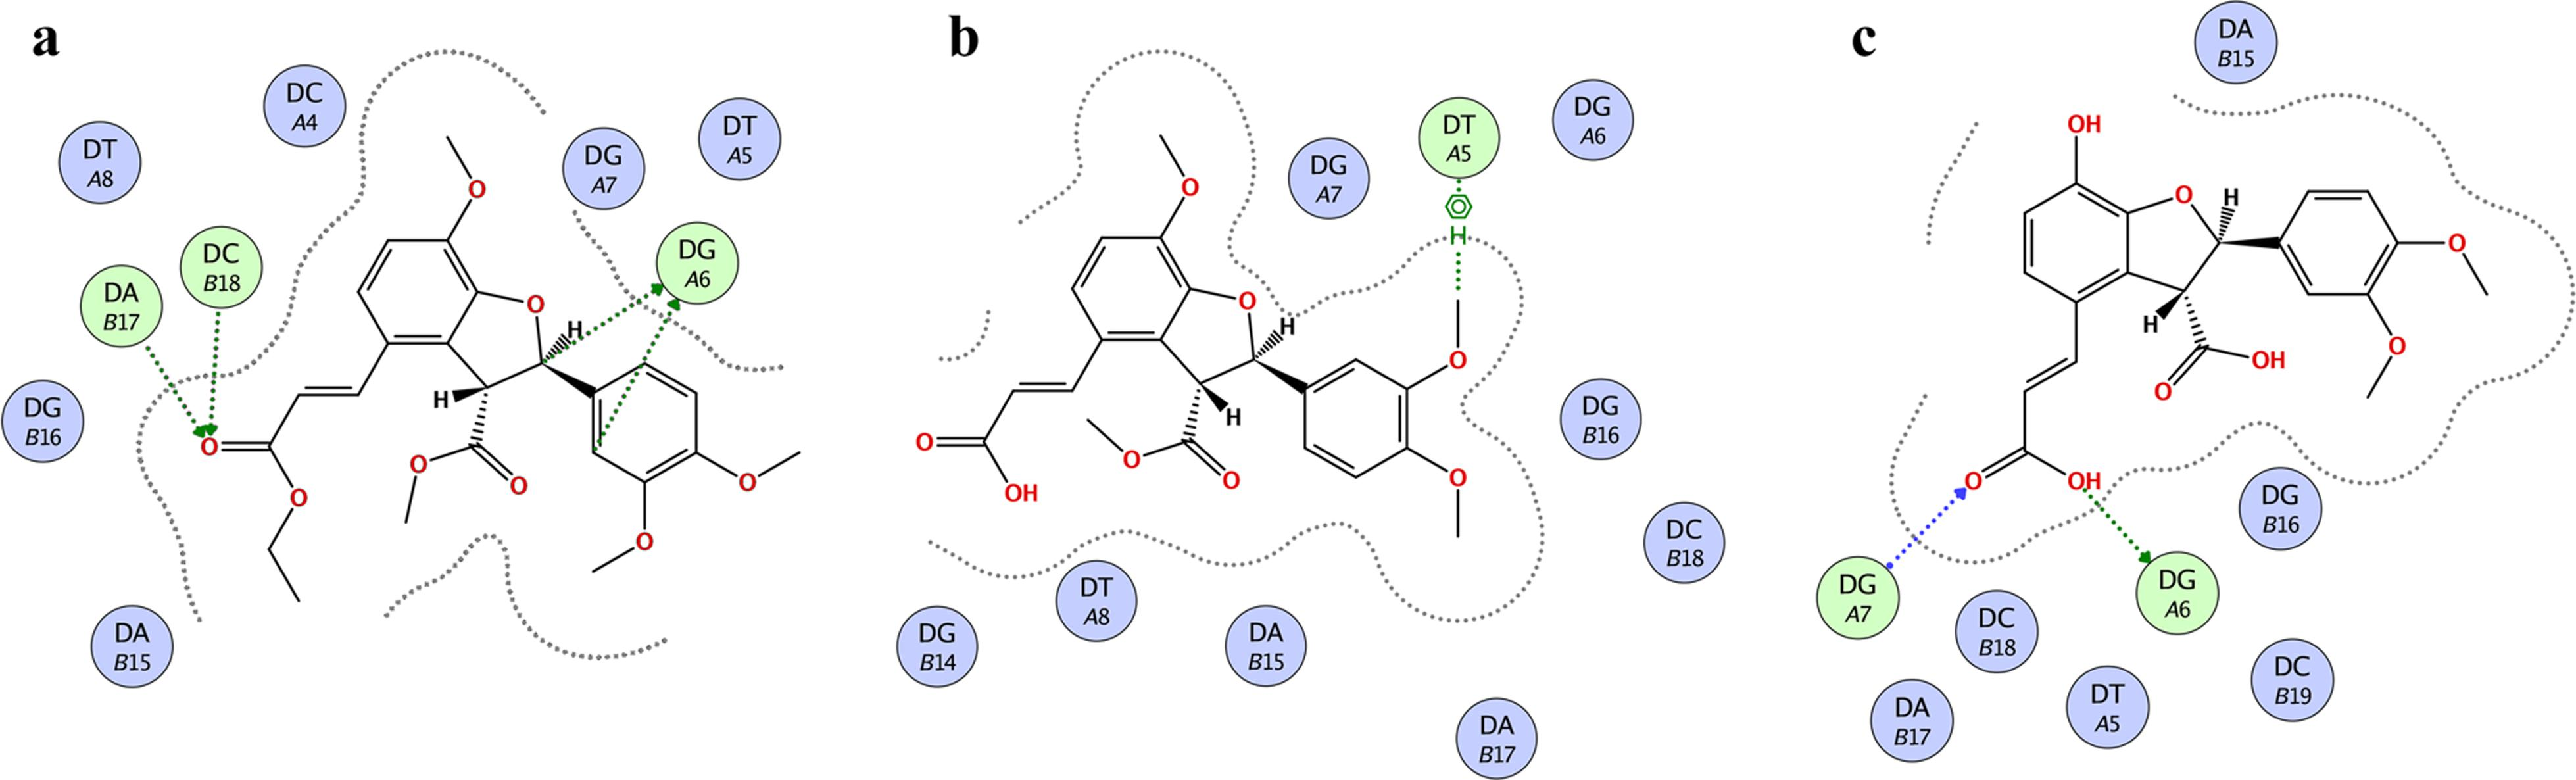 Isolation of dihydrobenzofuran derivatives from